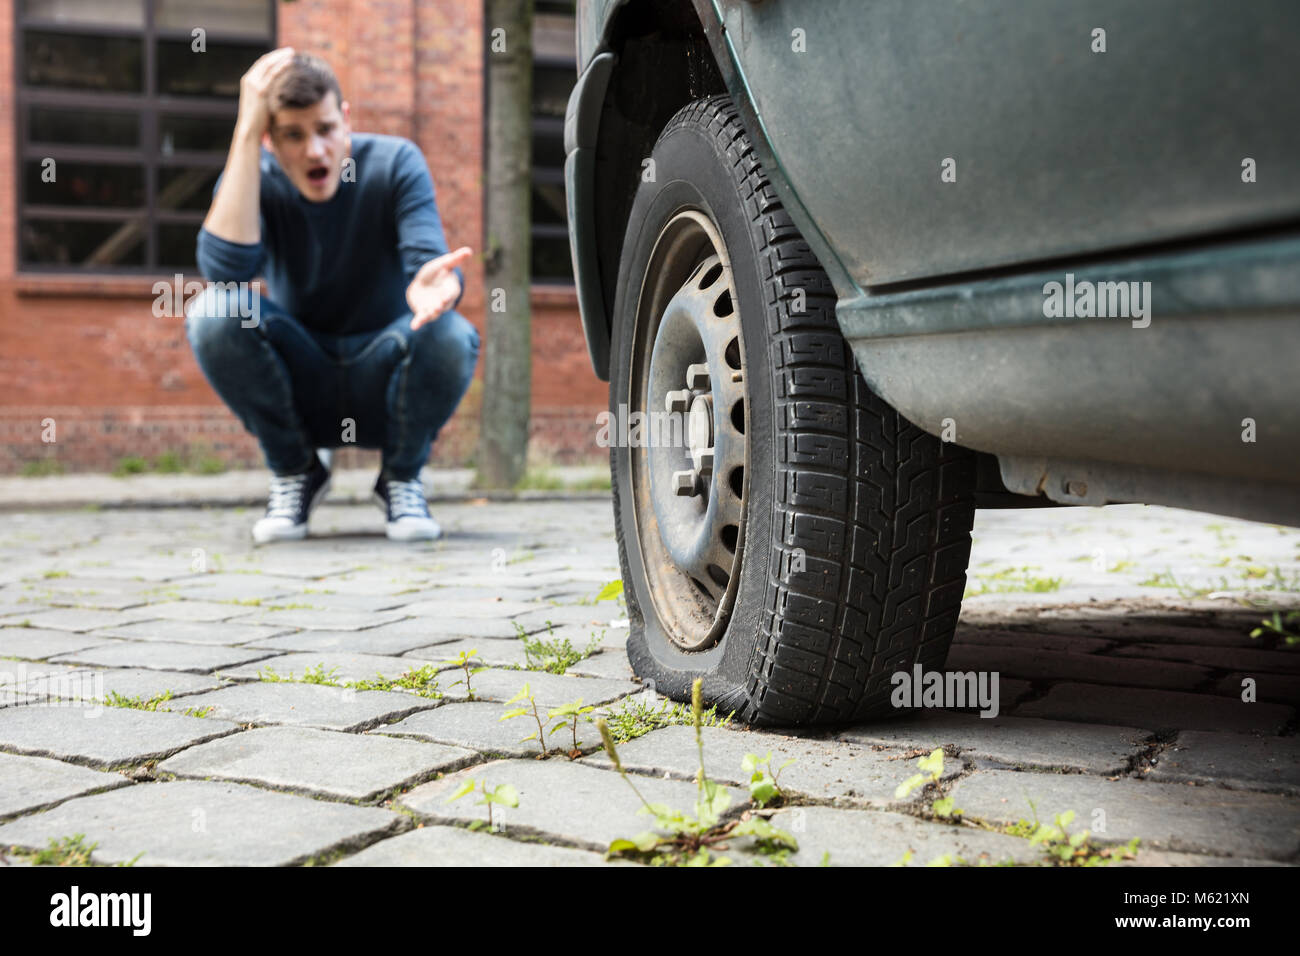 Crouched Worried Young Man With Hand On Head Pointing At Punctured Car Tire - Stock Image